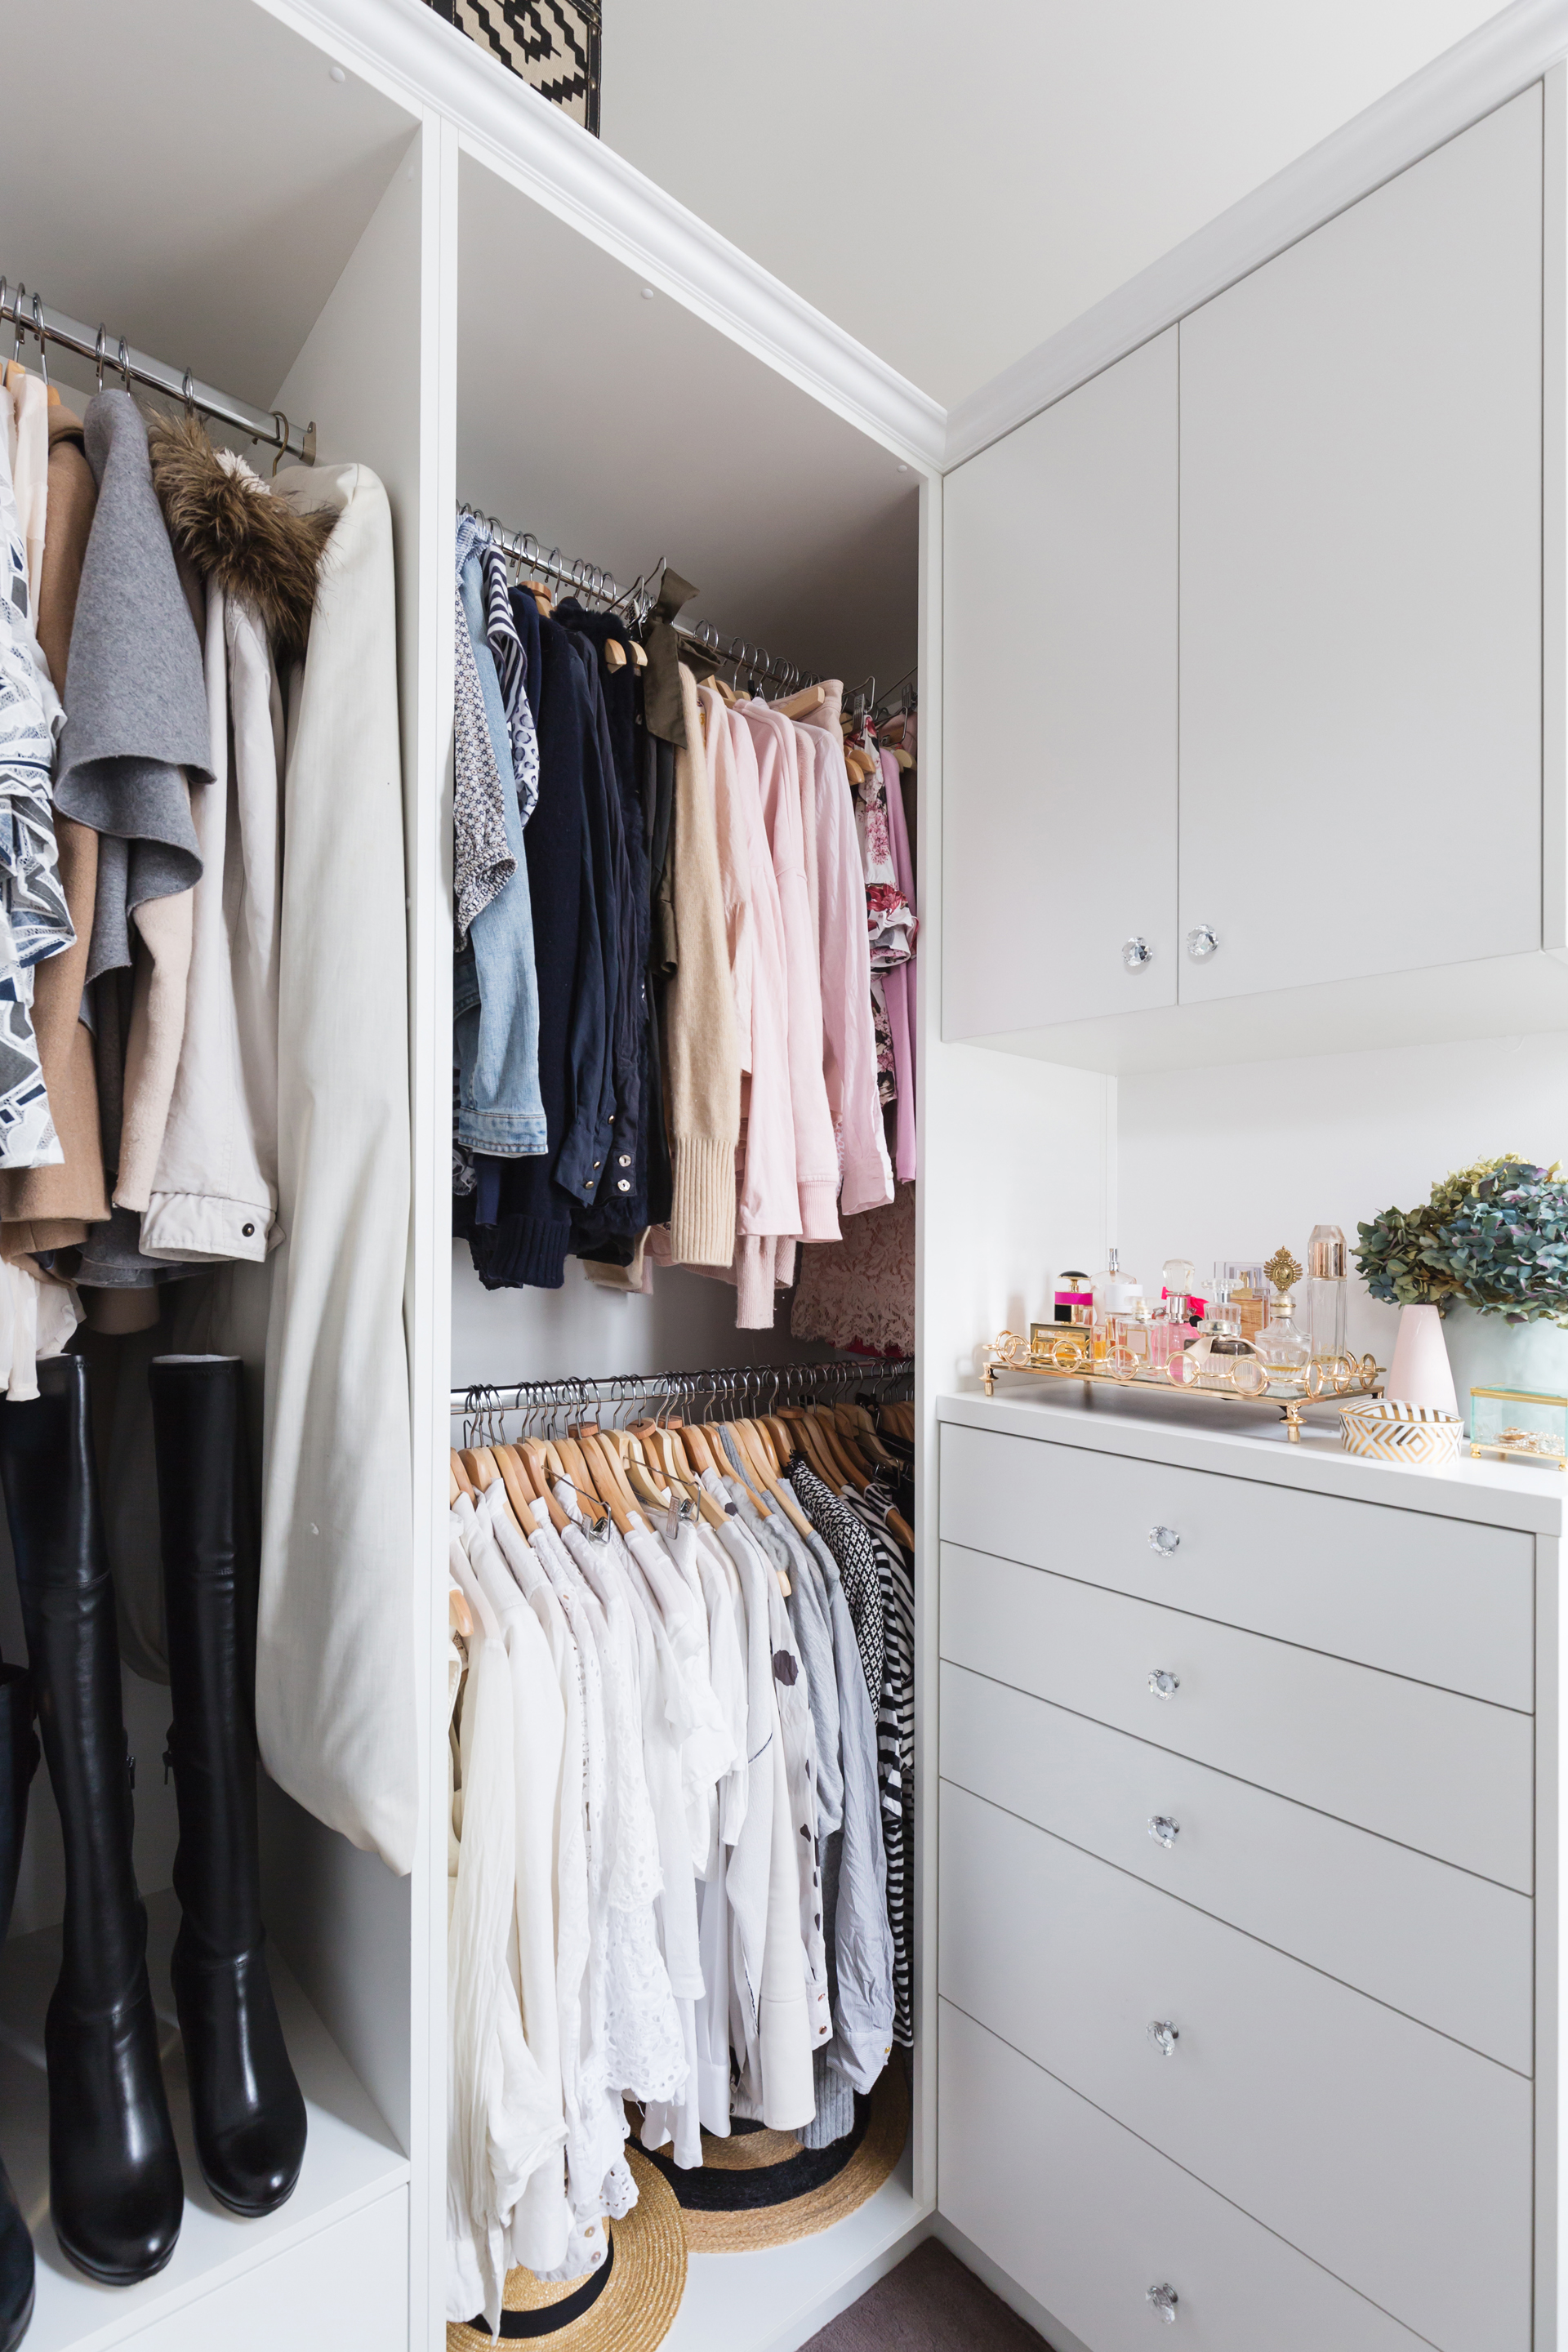 A well-organised wardrobe can save you time as well as money because you'll be able to see what items you really need at a glance before shopping (JodieJohnson/Thinkstock)